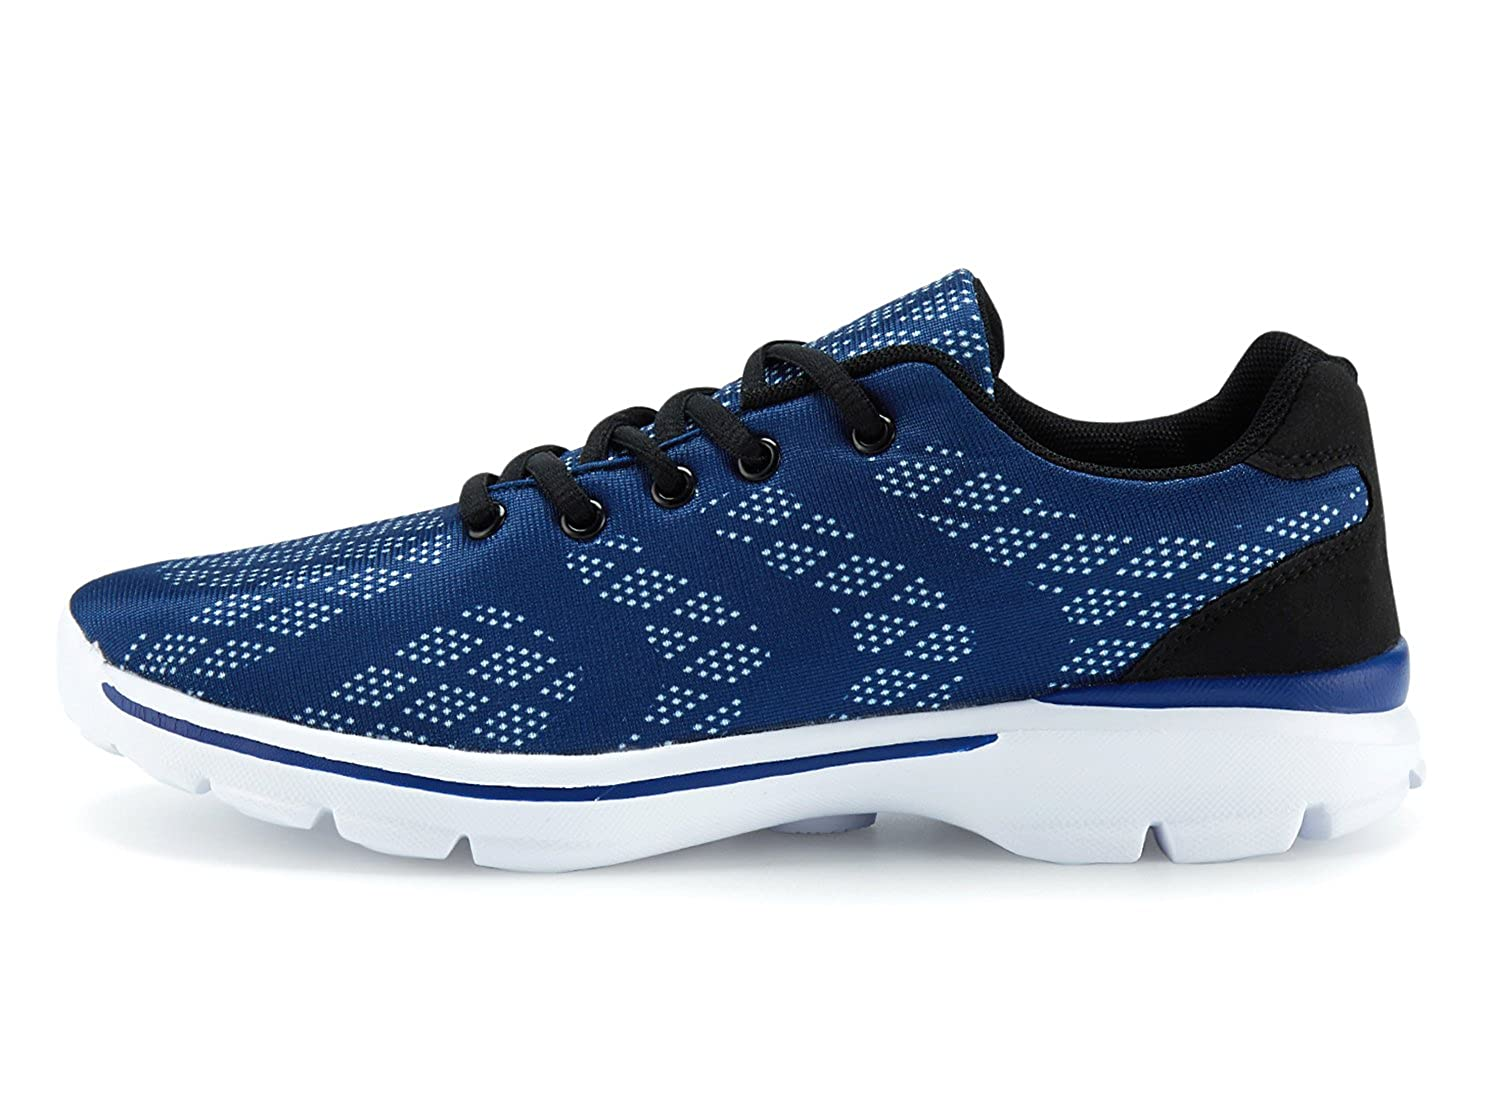 Mens Lightweight Breathable Running Tennis Sneakers Casual Walking Shoes